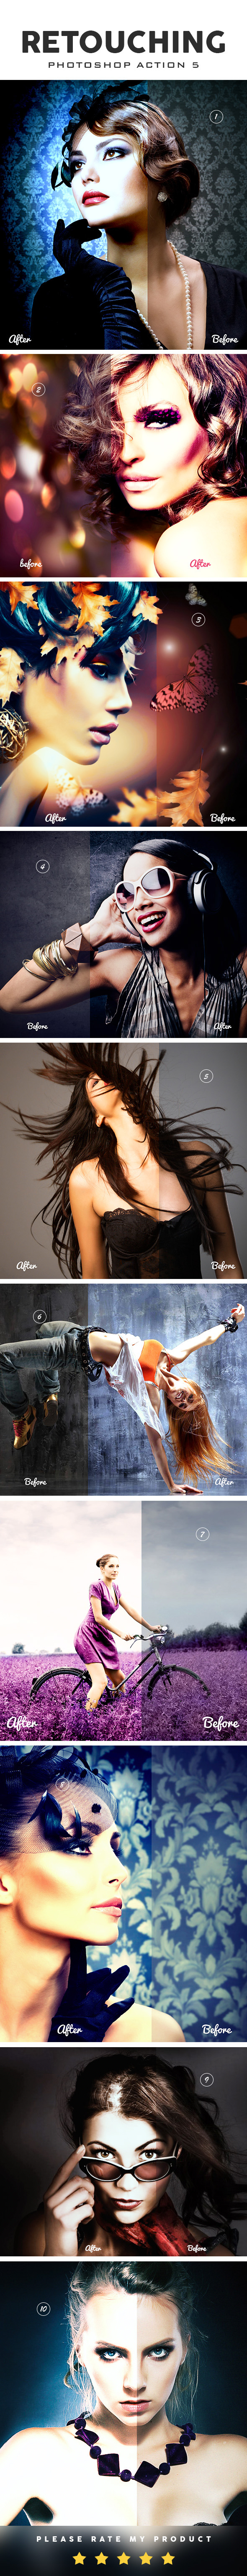 GraphicRiver Retouching Photoshop Action 5 10608358